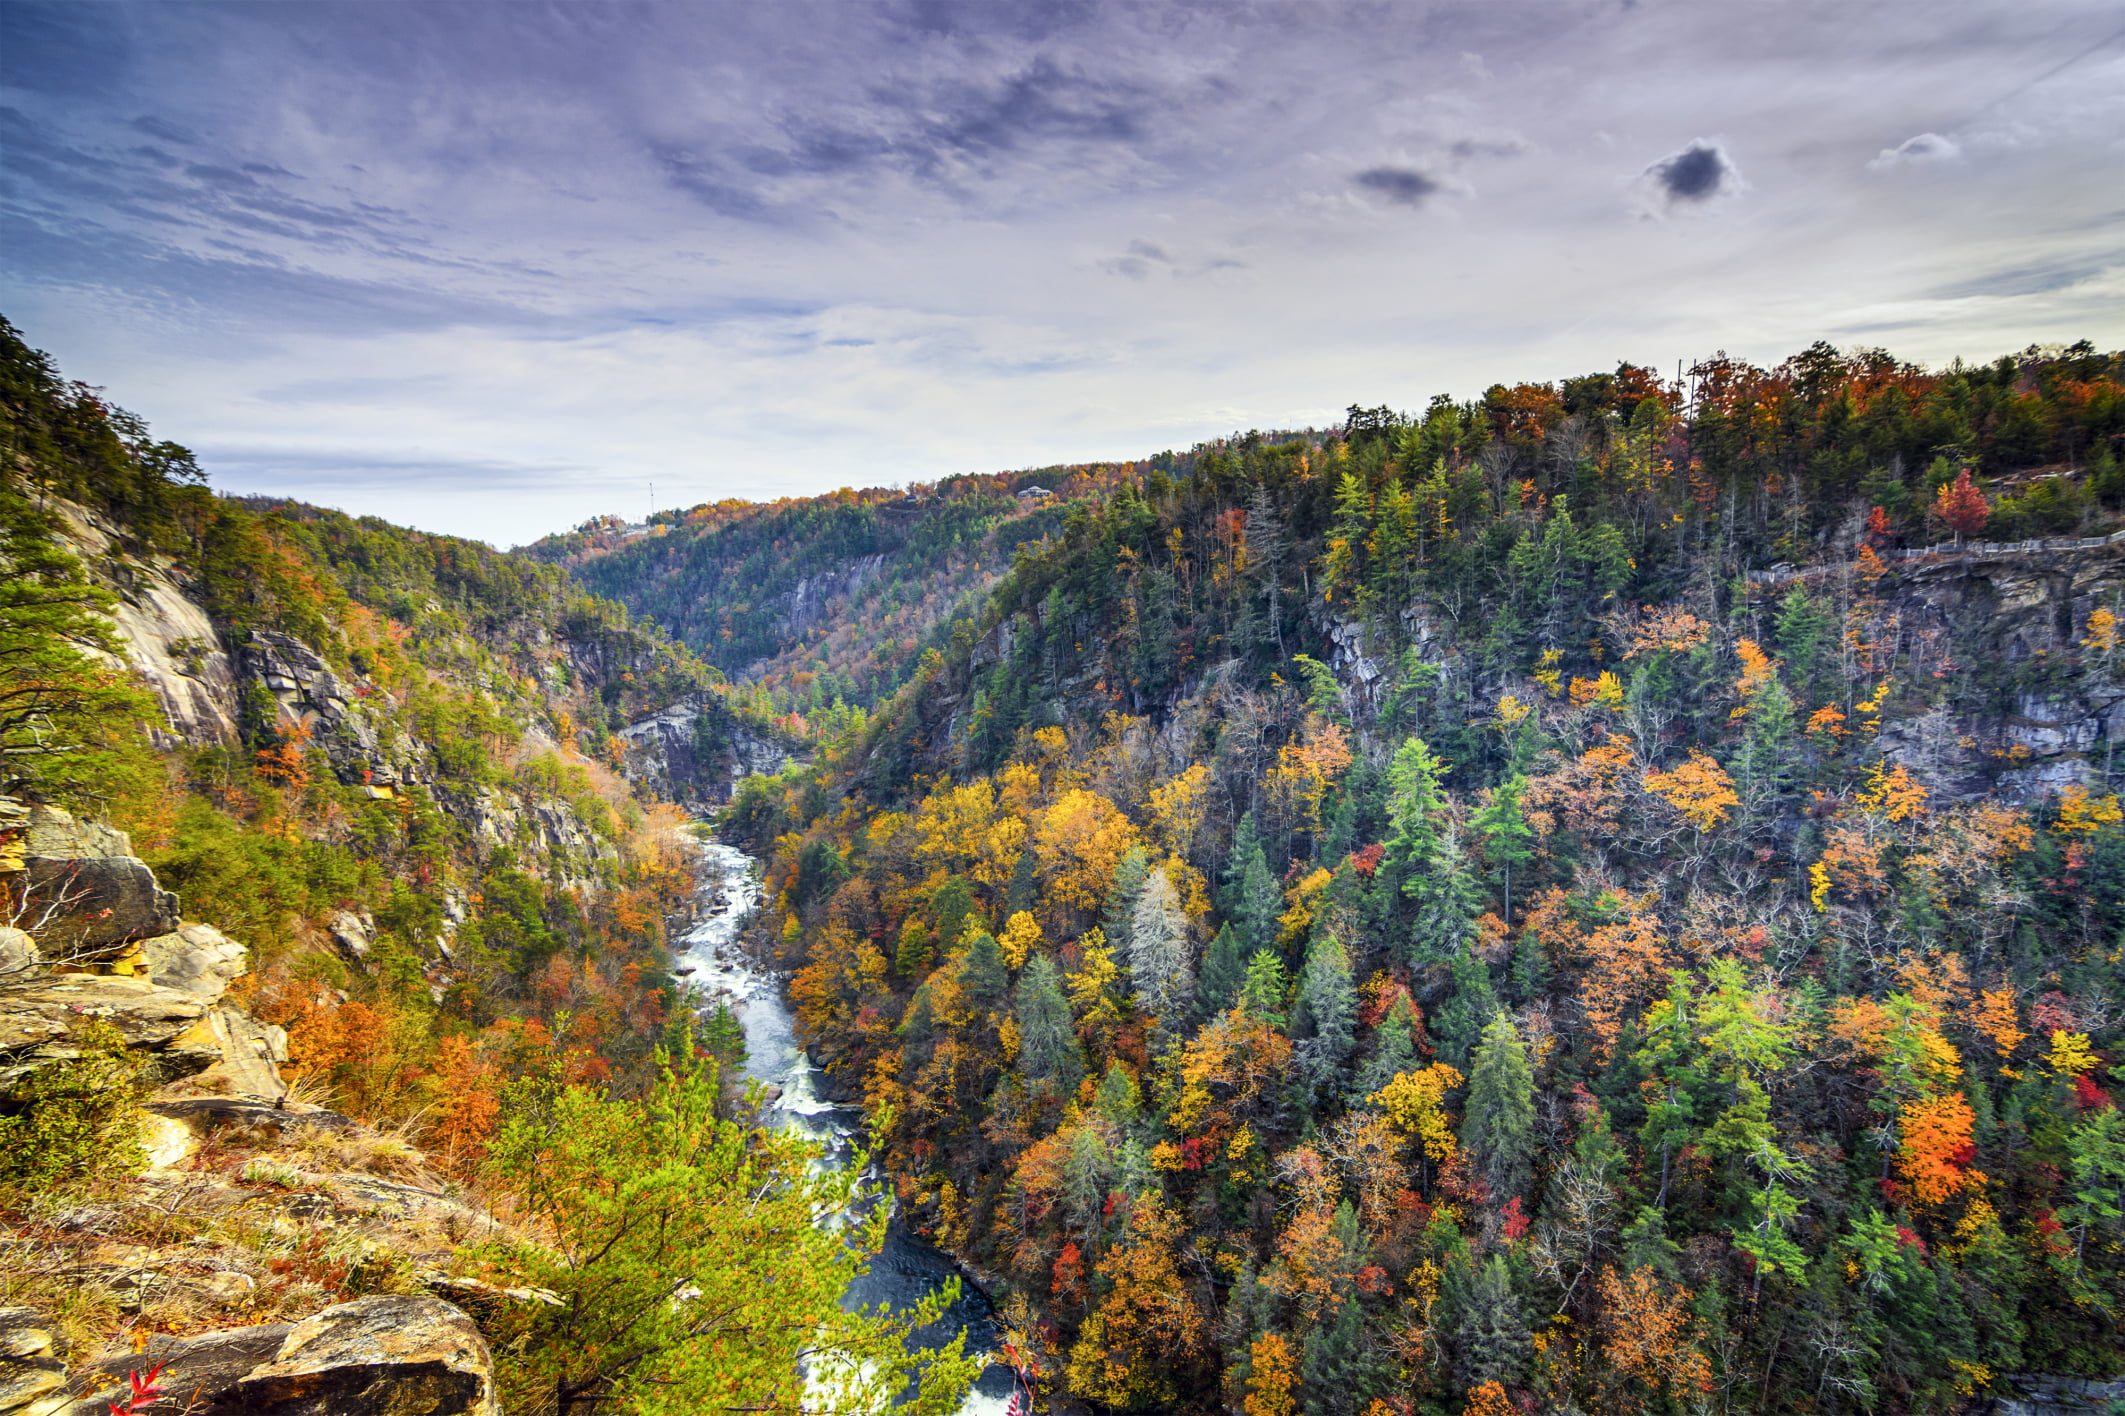 6 Of The Best Activities At The Tallulah Gorge State Park Glen Ella